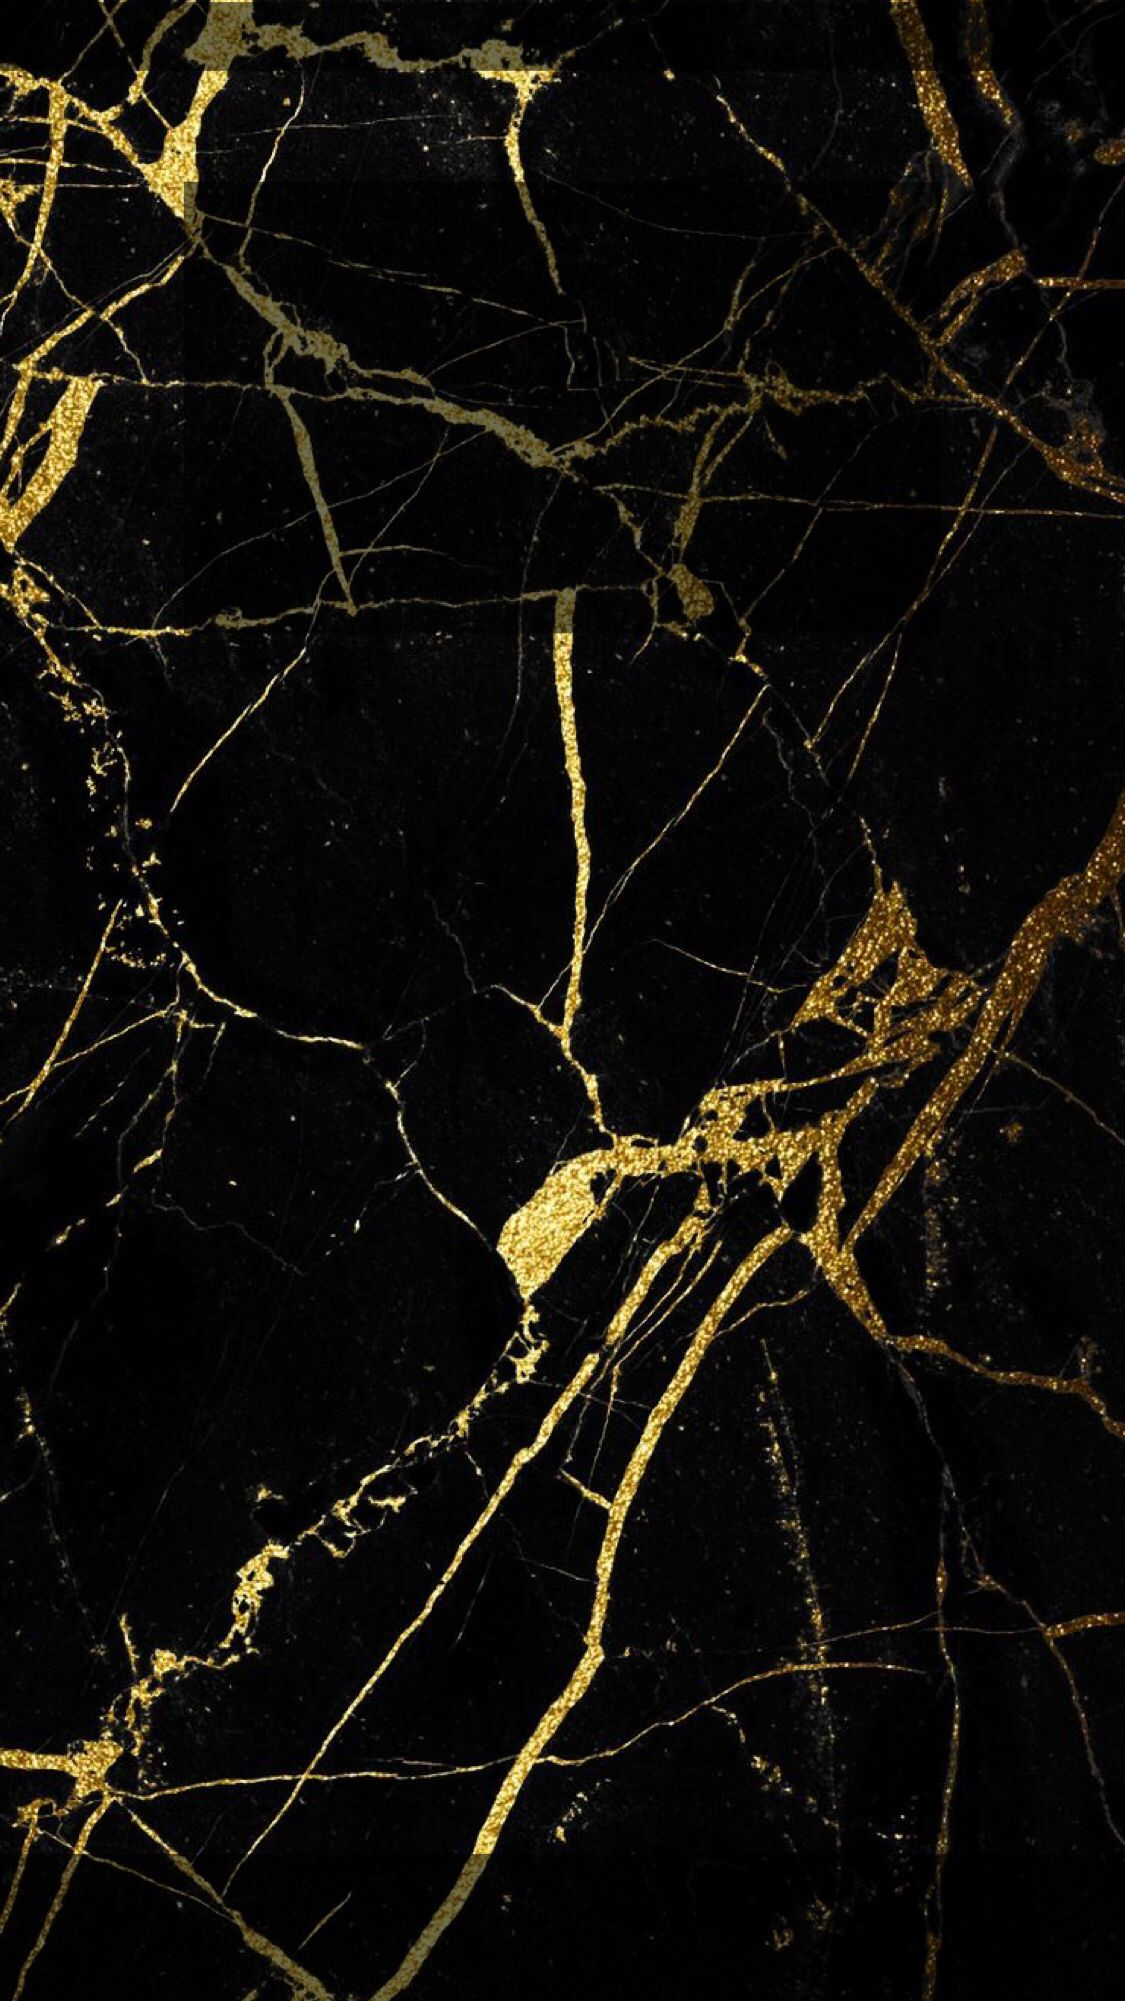 Pin by amy on WALLPAPERS Gold, black wallpaper, Gold